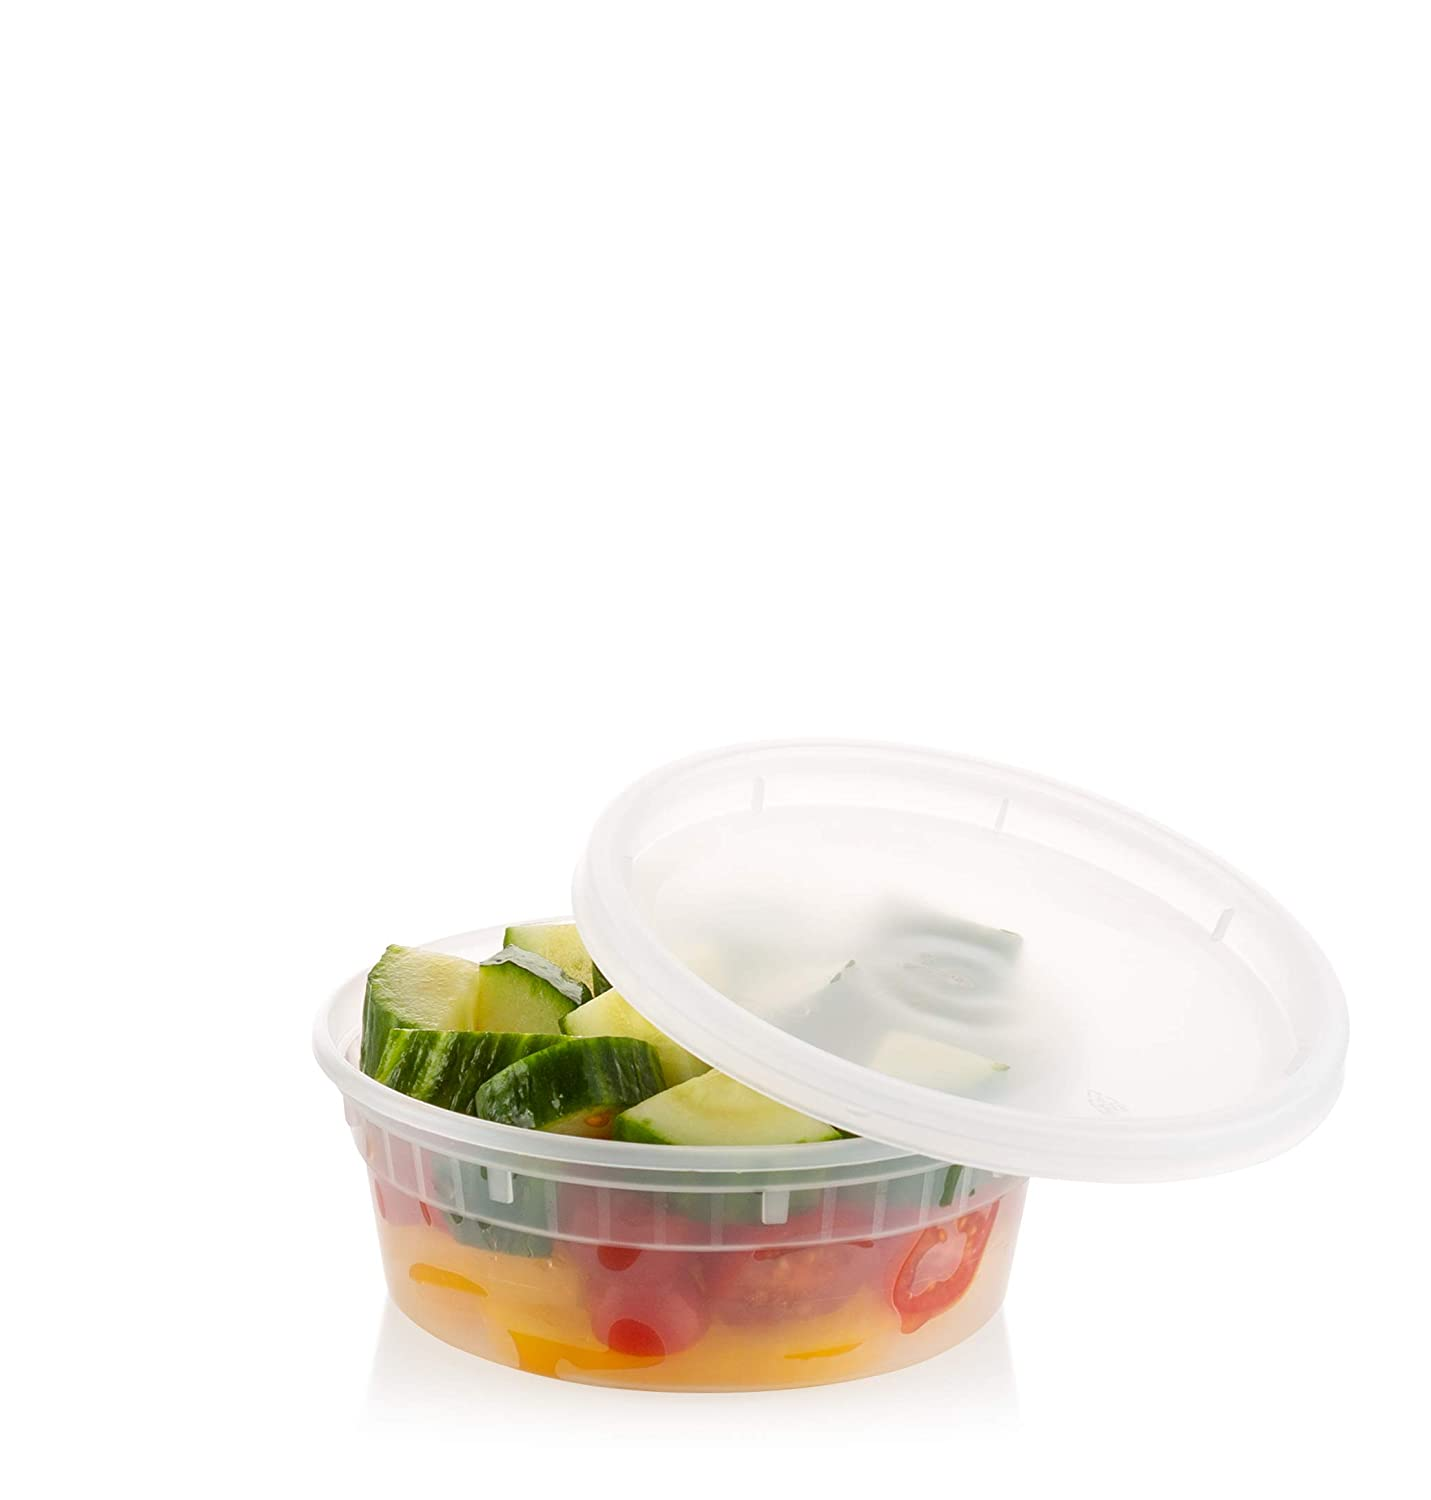 ZEML 8 oz. Deli Food Storage Containers With Leak-proof Lids - 24 Sets